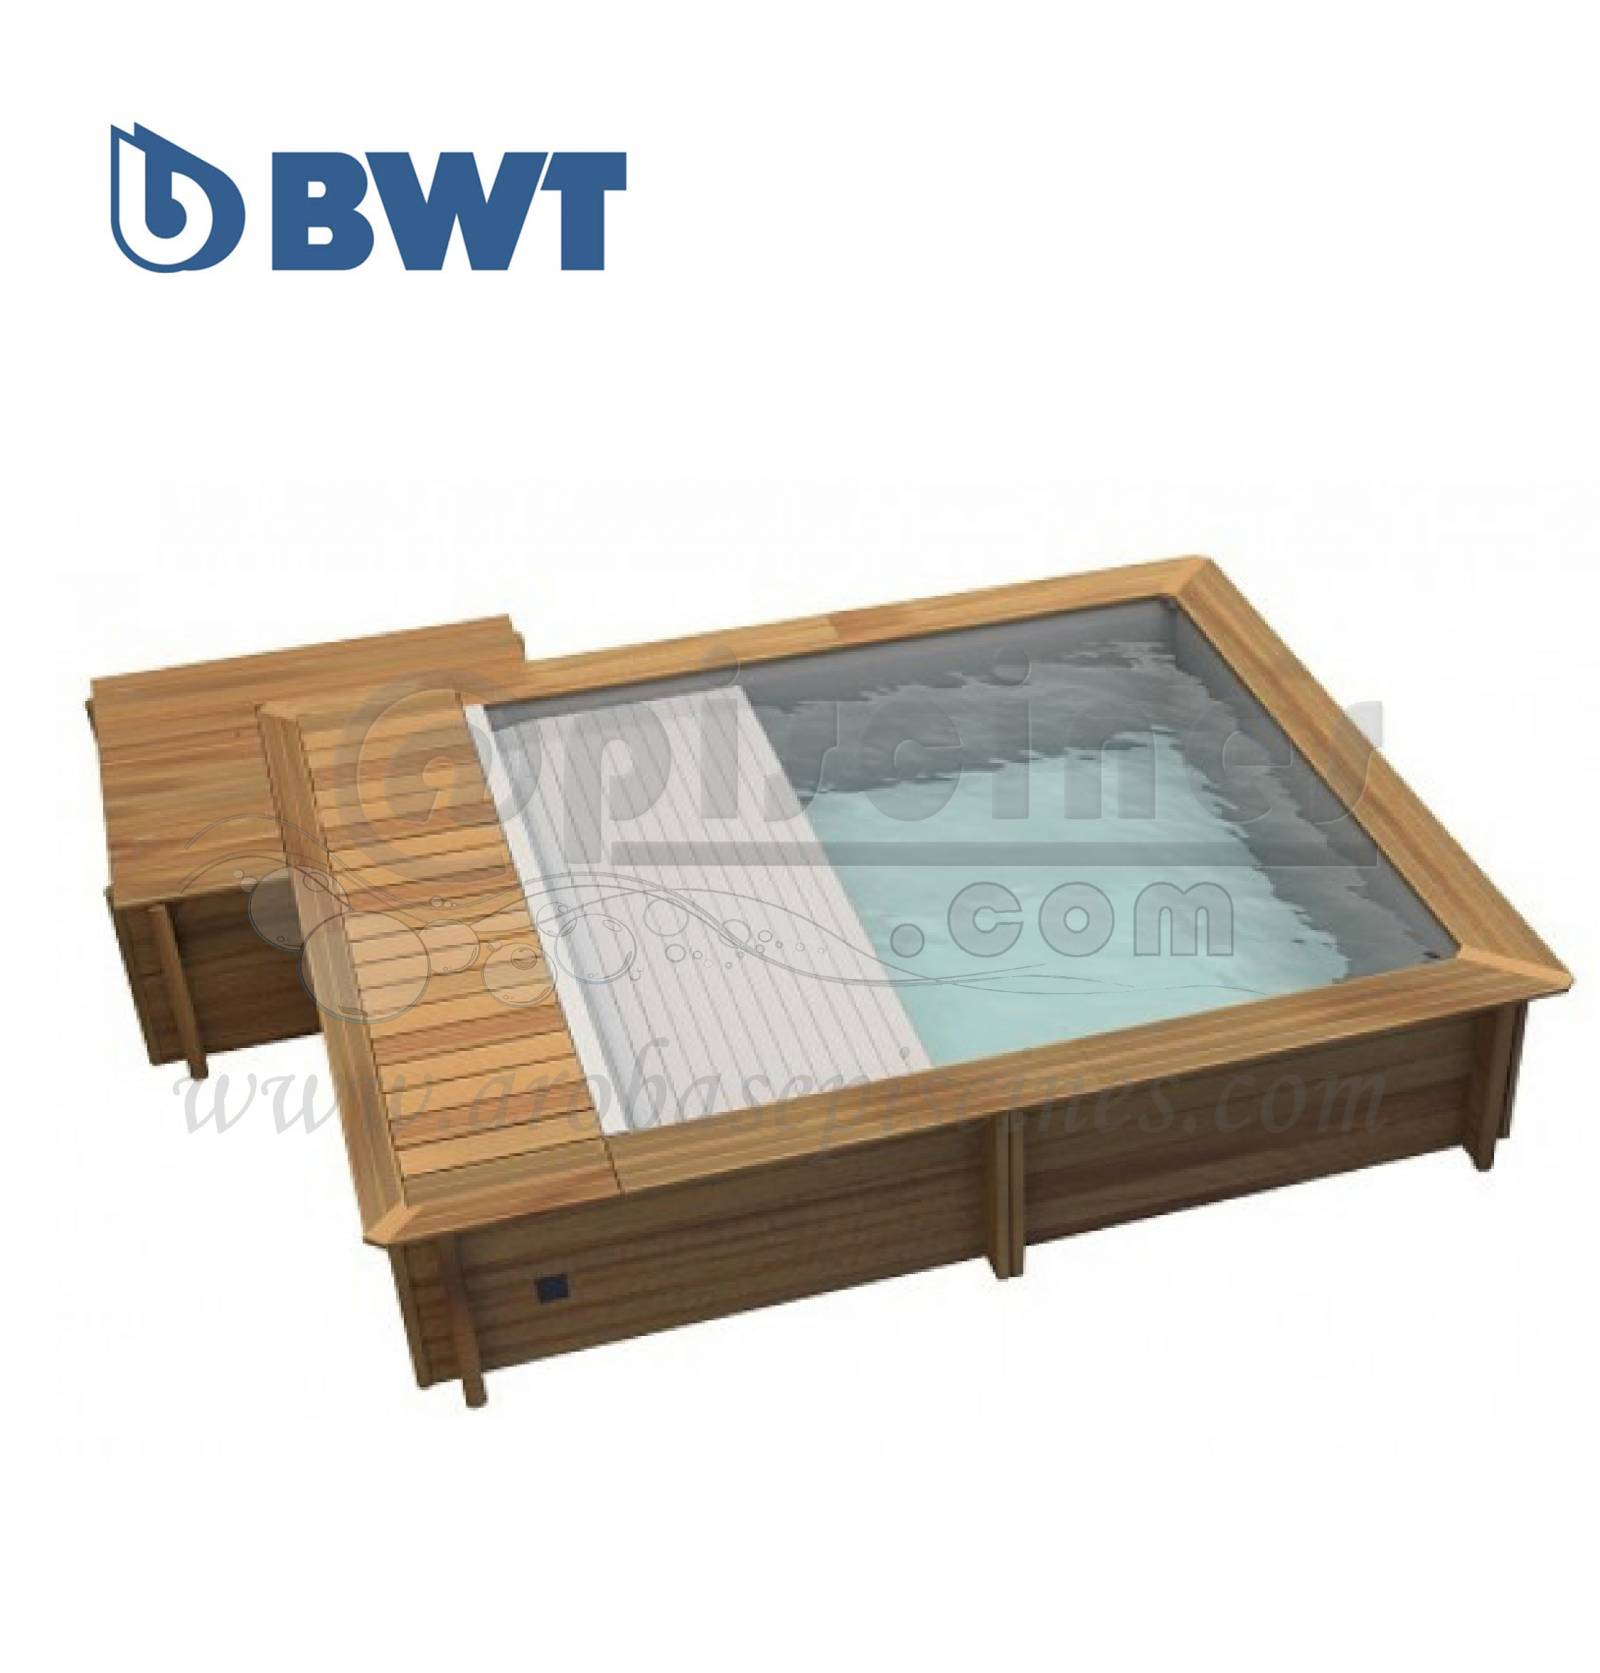 piscine hors sol bois urbaine carr moins de 10m2 piscine en ligne arobase piscines. Black Bedroom Furniture Sets. Home Design Ideas